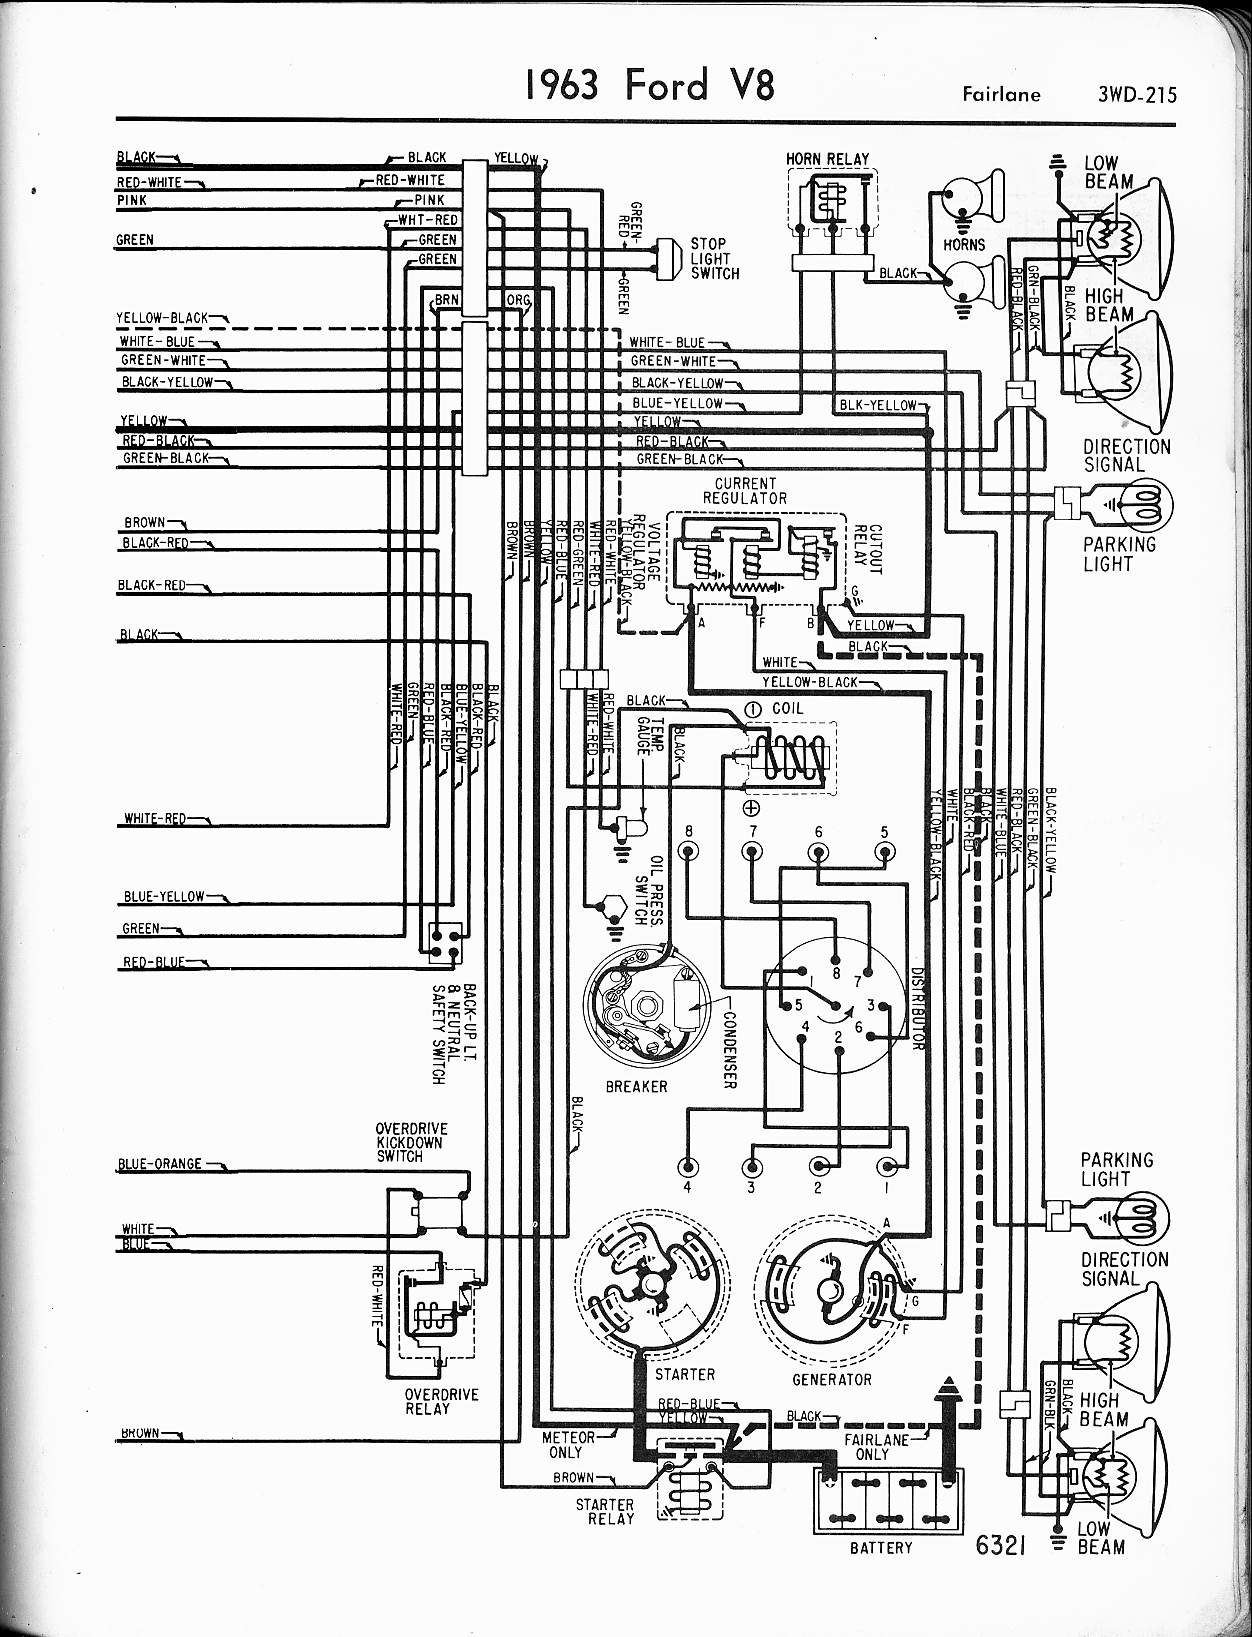 1965 Ford Falcon Wiring Diagram Data 1964 Futura 65 Ignition Switch 1961